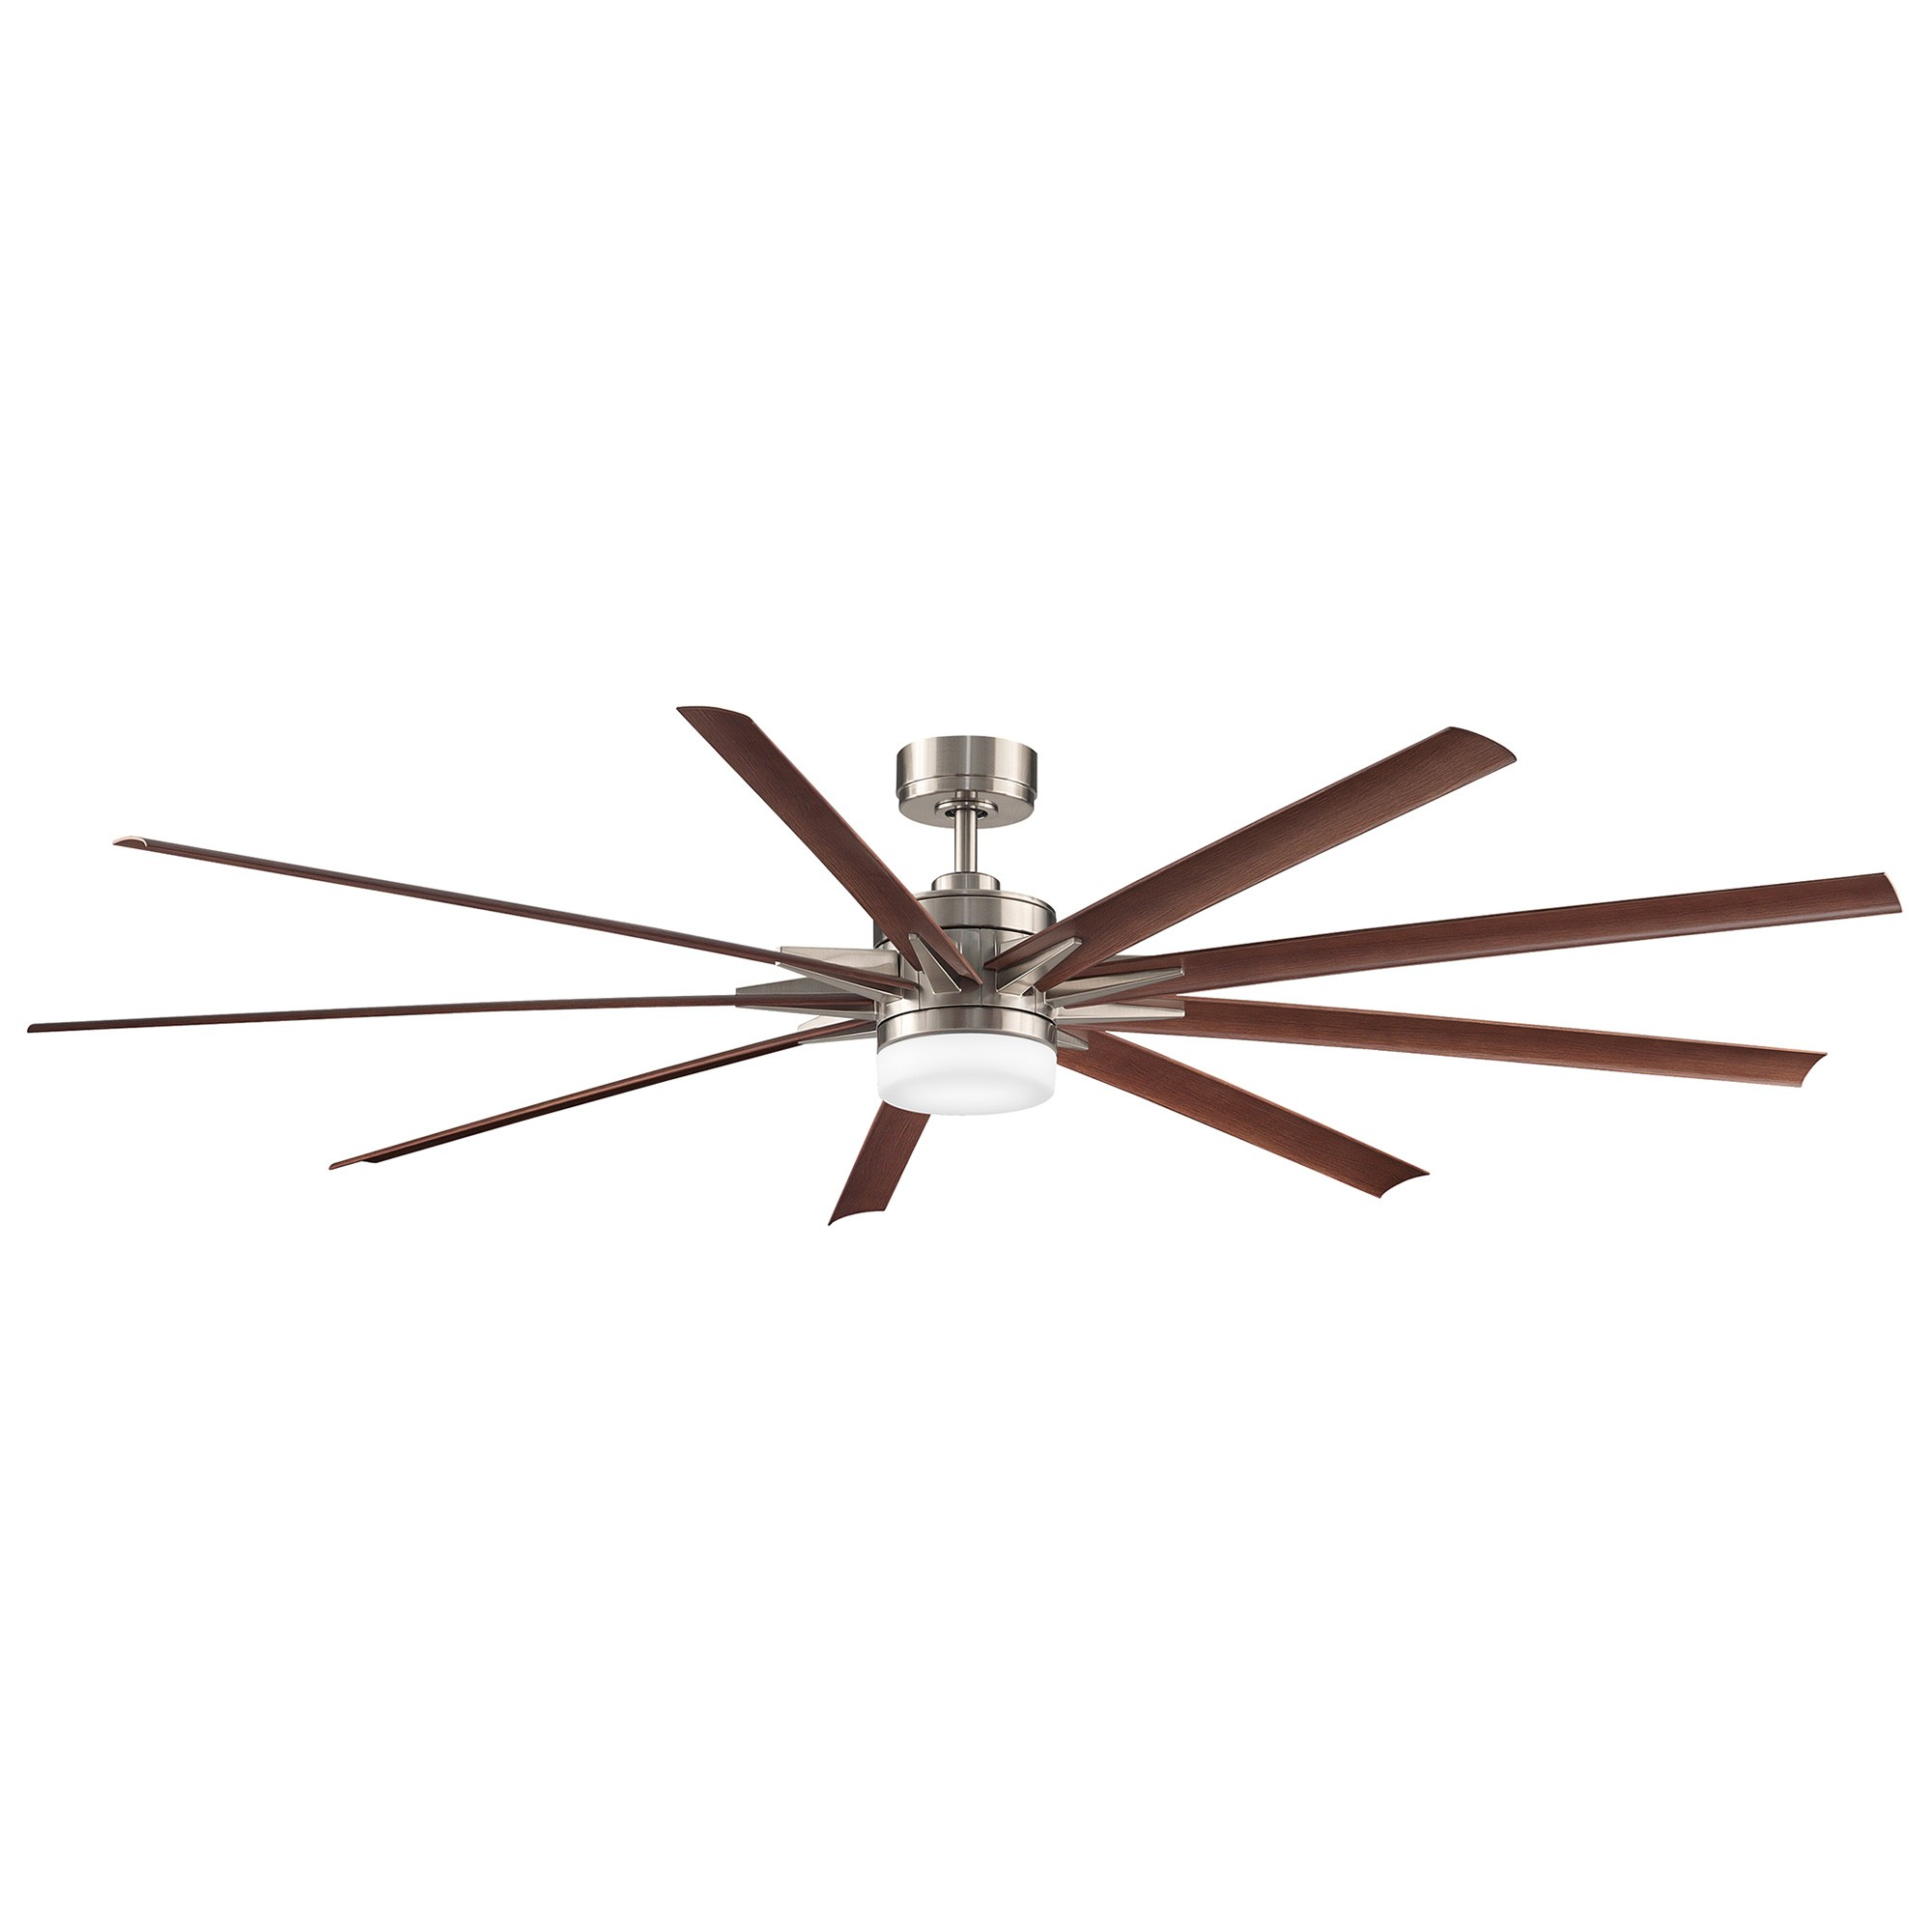 Fanimation Odyn DC Ceiling Fan with LED Light, 213cm/84